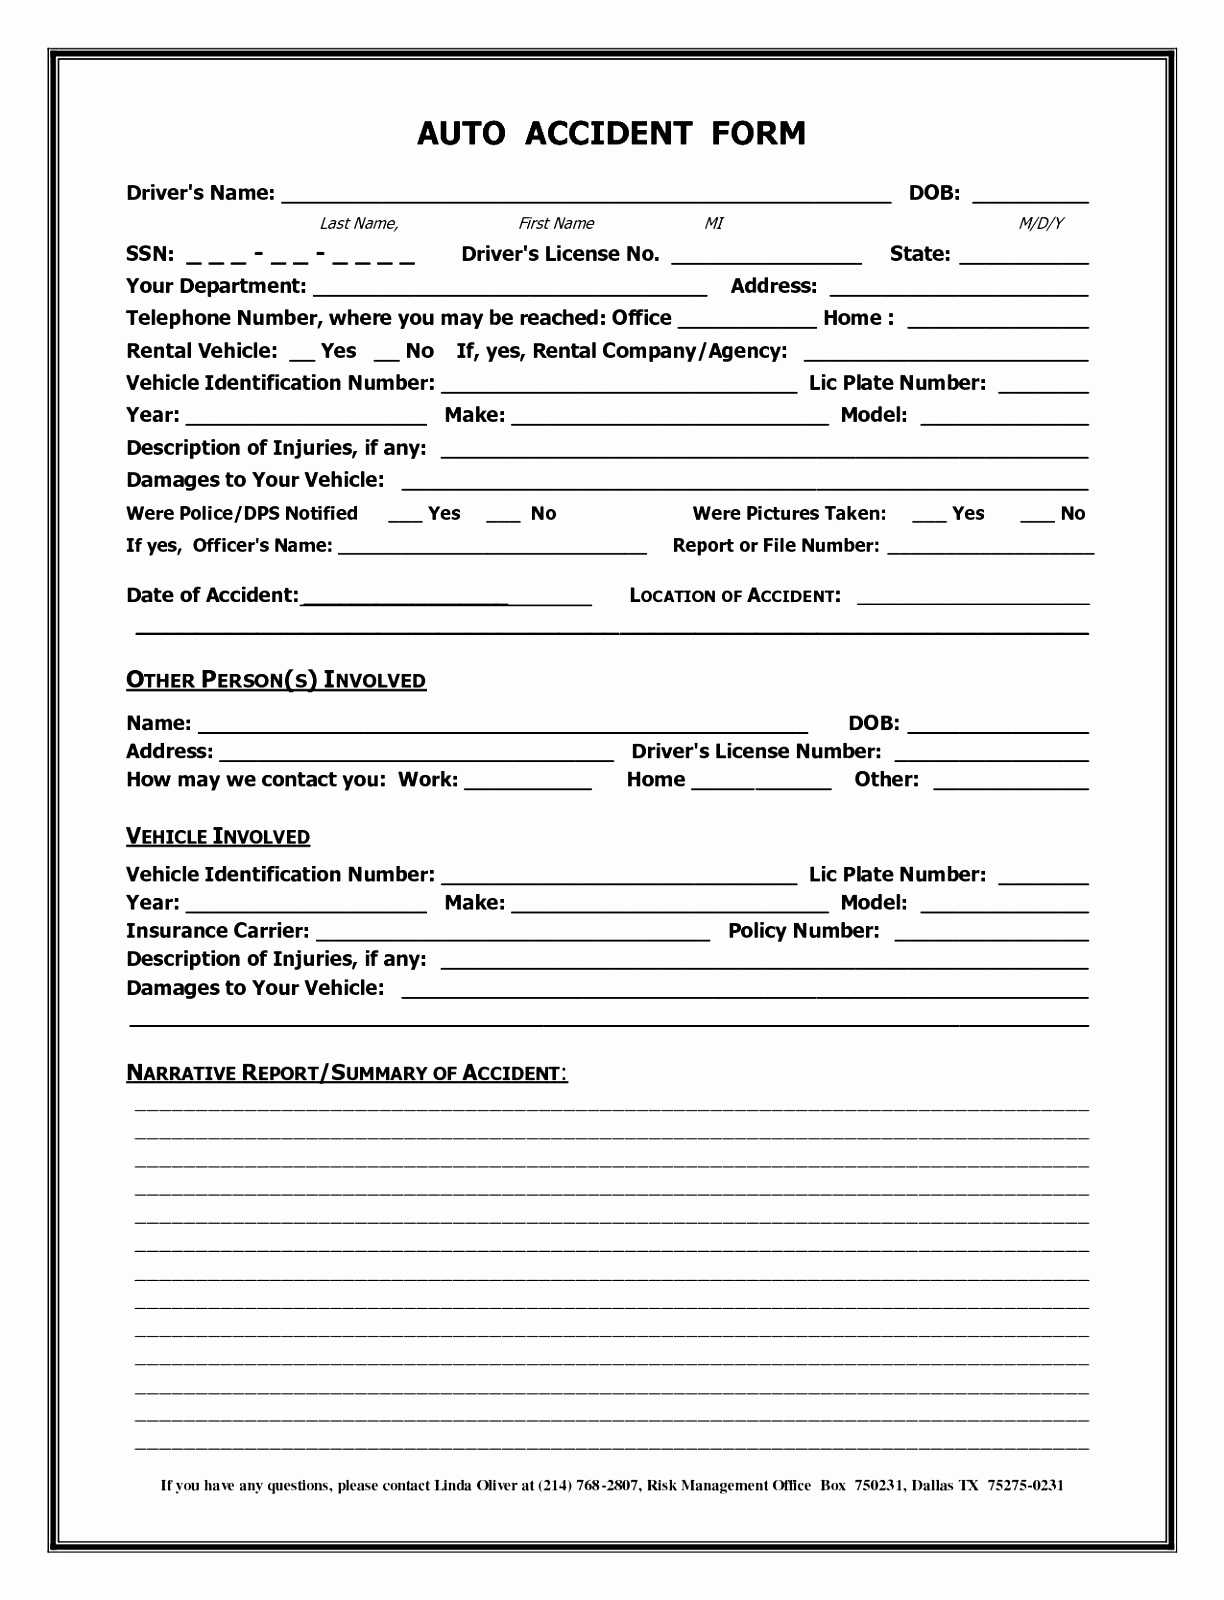 Accident Report Form Template Uk - Atlantaauctionco With Motor Vehicle Accident Report Form Template